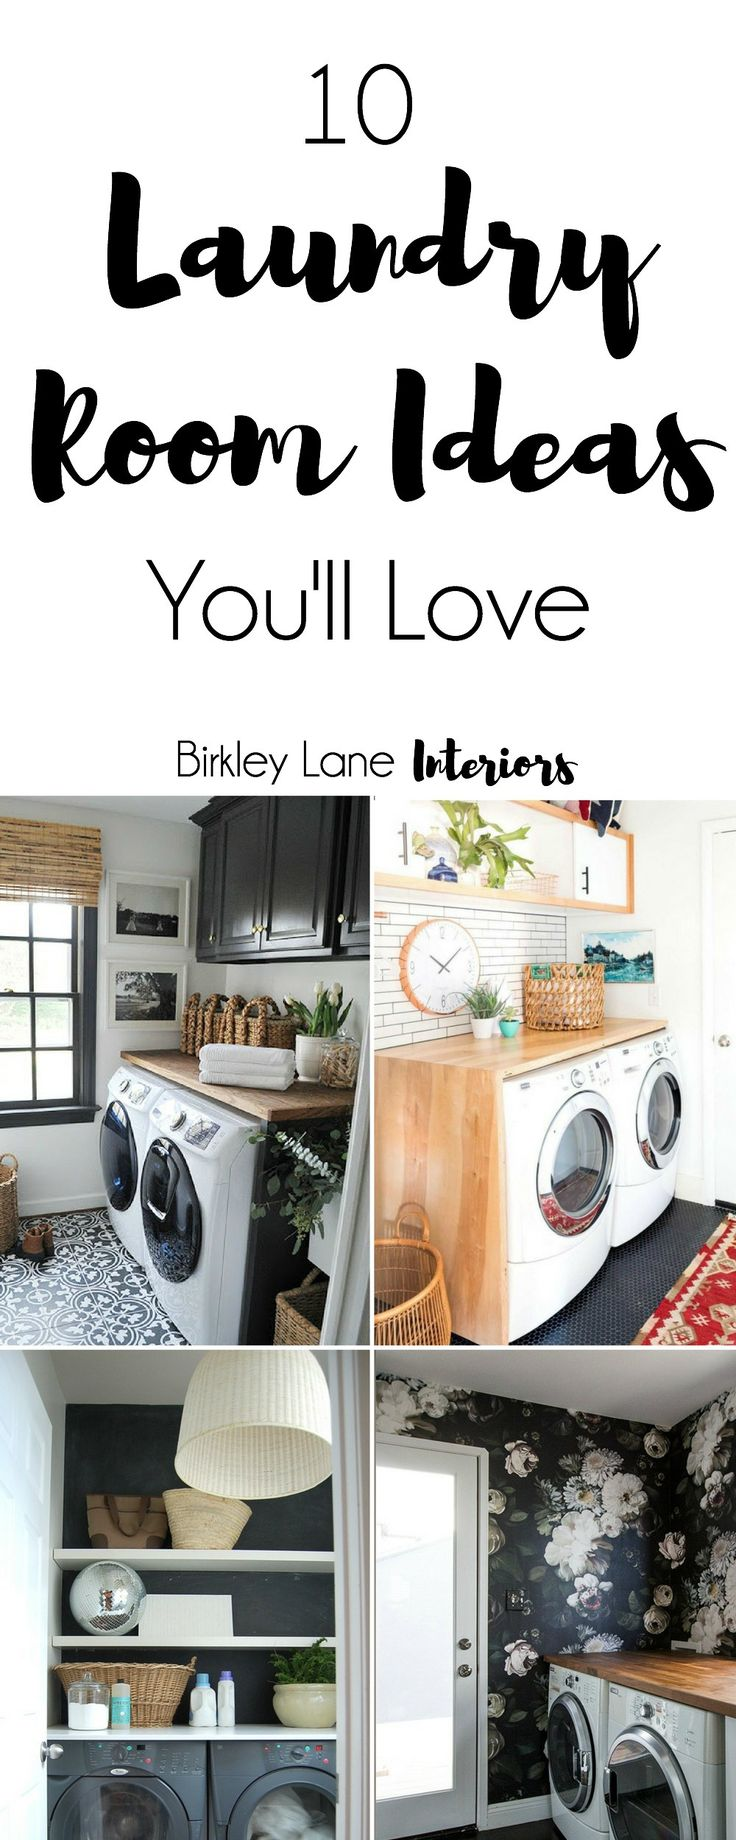 https www.hometourseries.com garage-storage-ideas-makeover-302 - Laundry room decorating ideas An Excellent Home Design